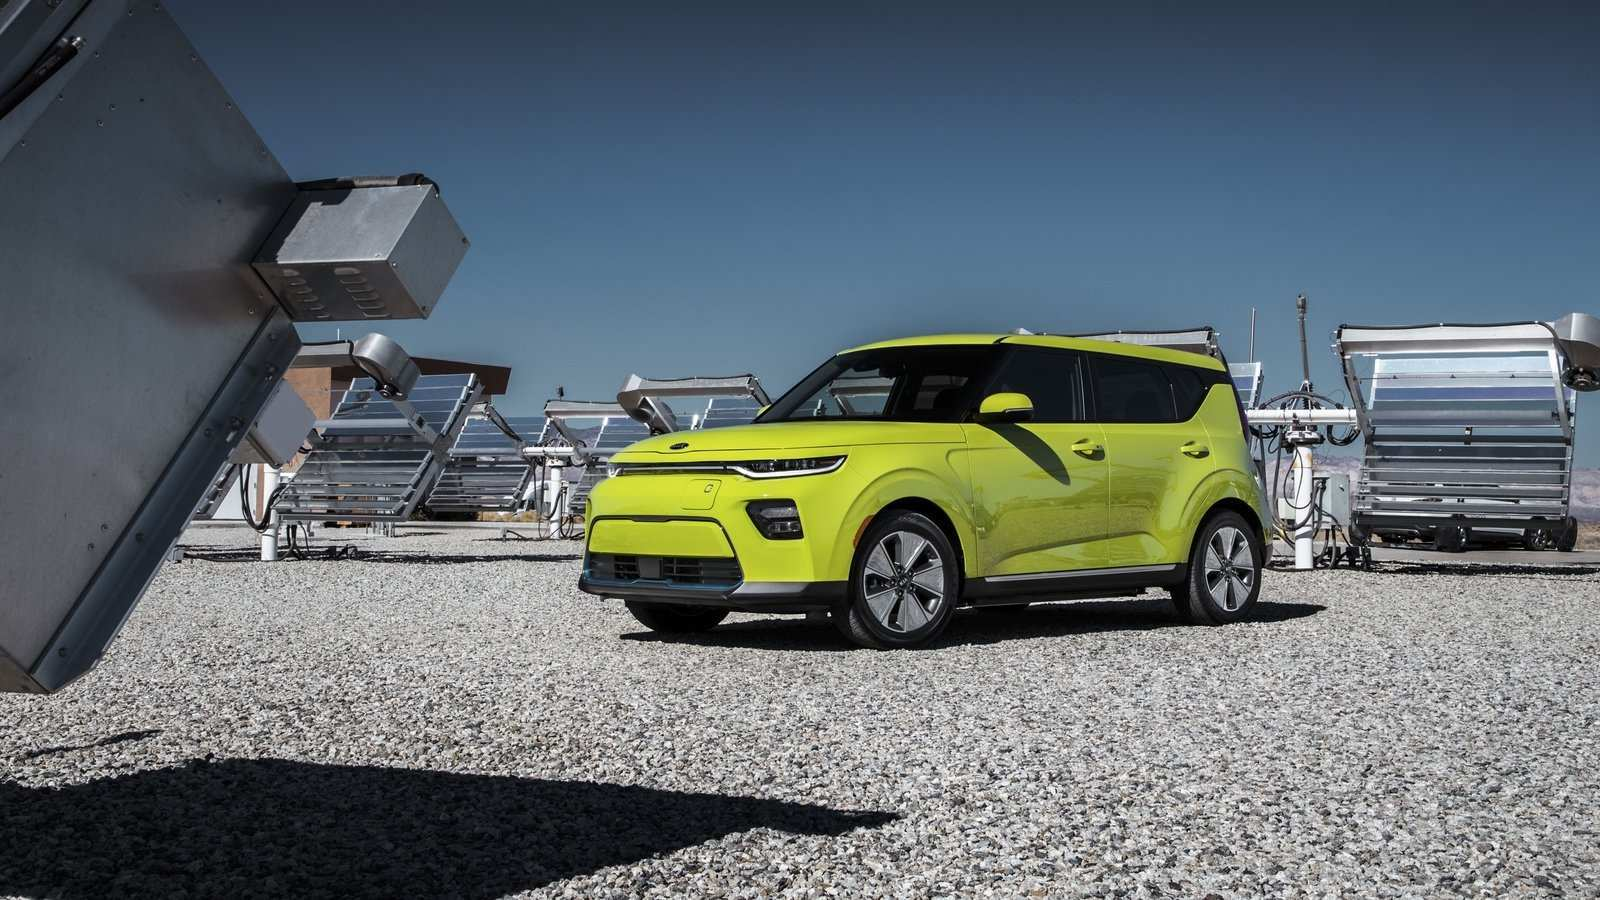 21 Gallery of 2020 Kia Soul Ev Price Pictures for 2020 Kia Soul Ev Price